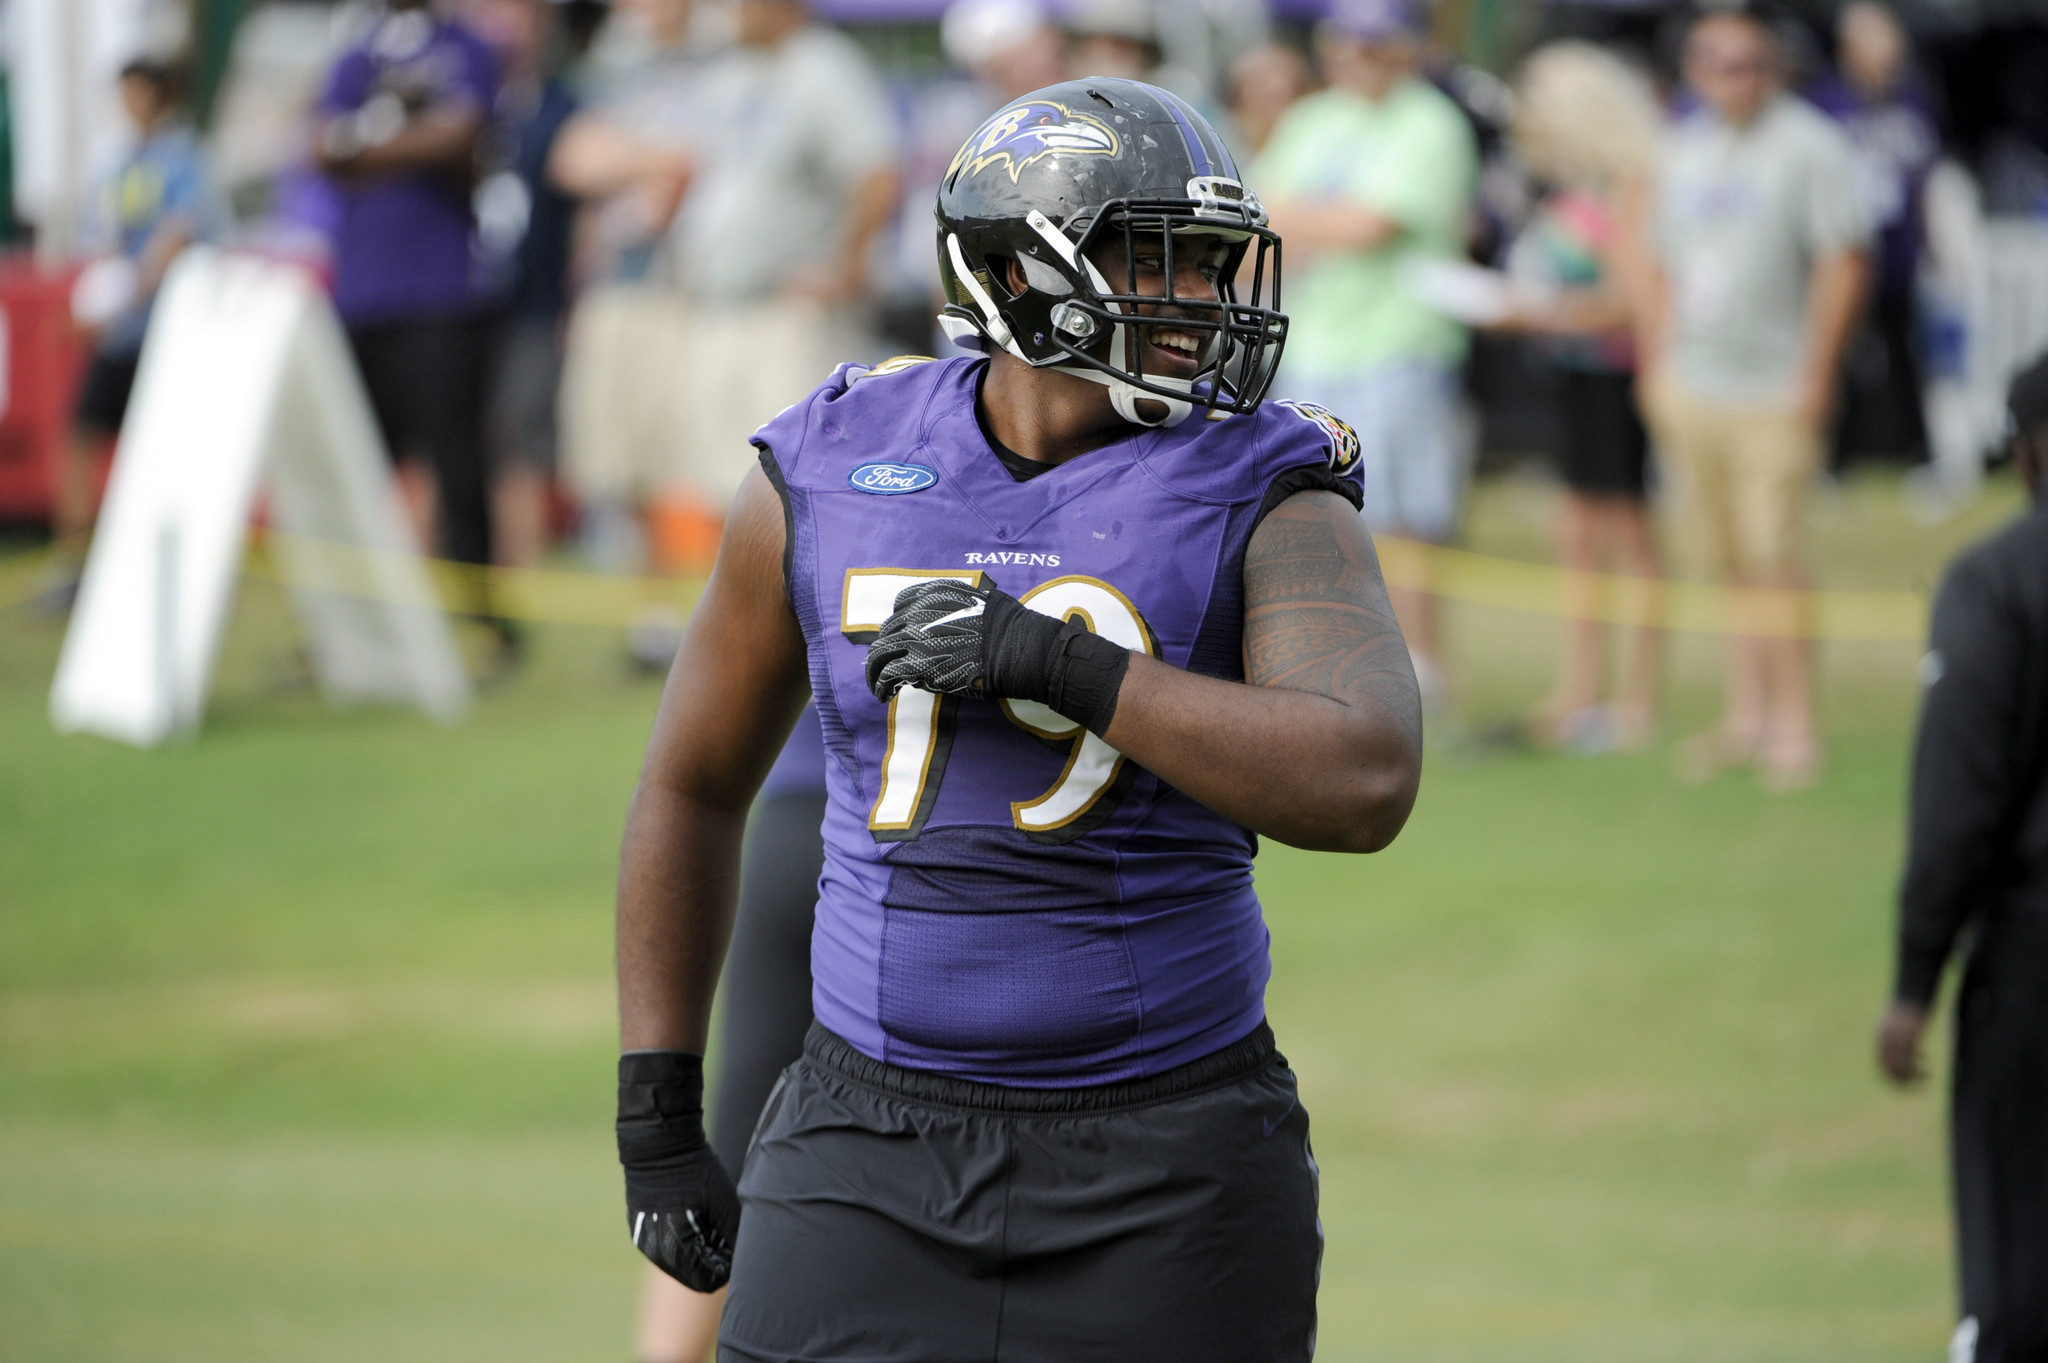 Bal-left-tackle-ronnie-stanley-said-his-status-is-up-to-ravens-coach-john-harbaugh-20161019